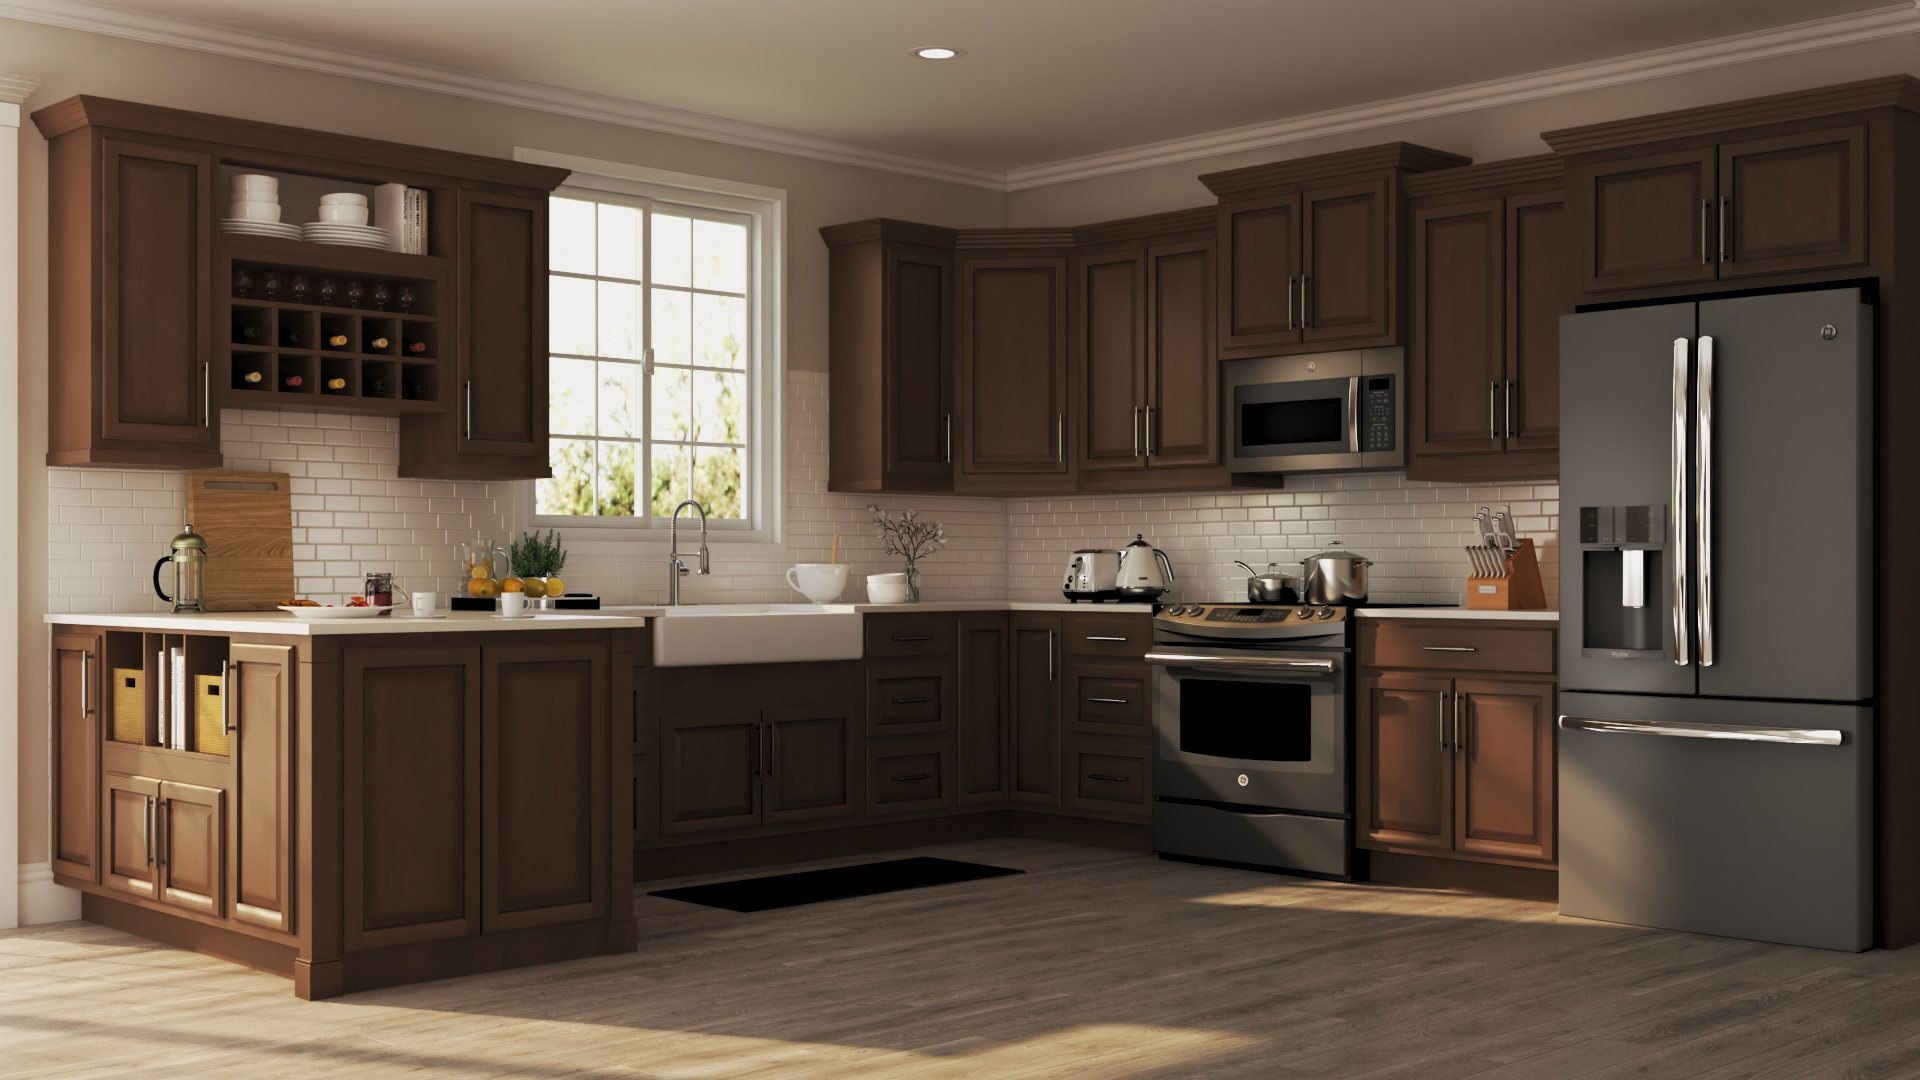 Shop Our Kitchen Cabinets Department To Customize Your Hampton